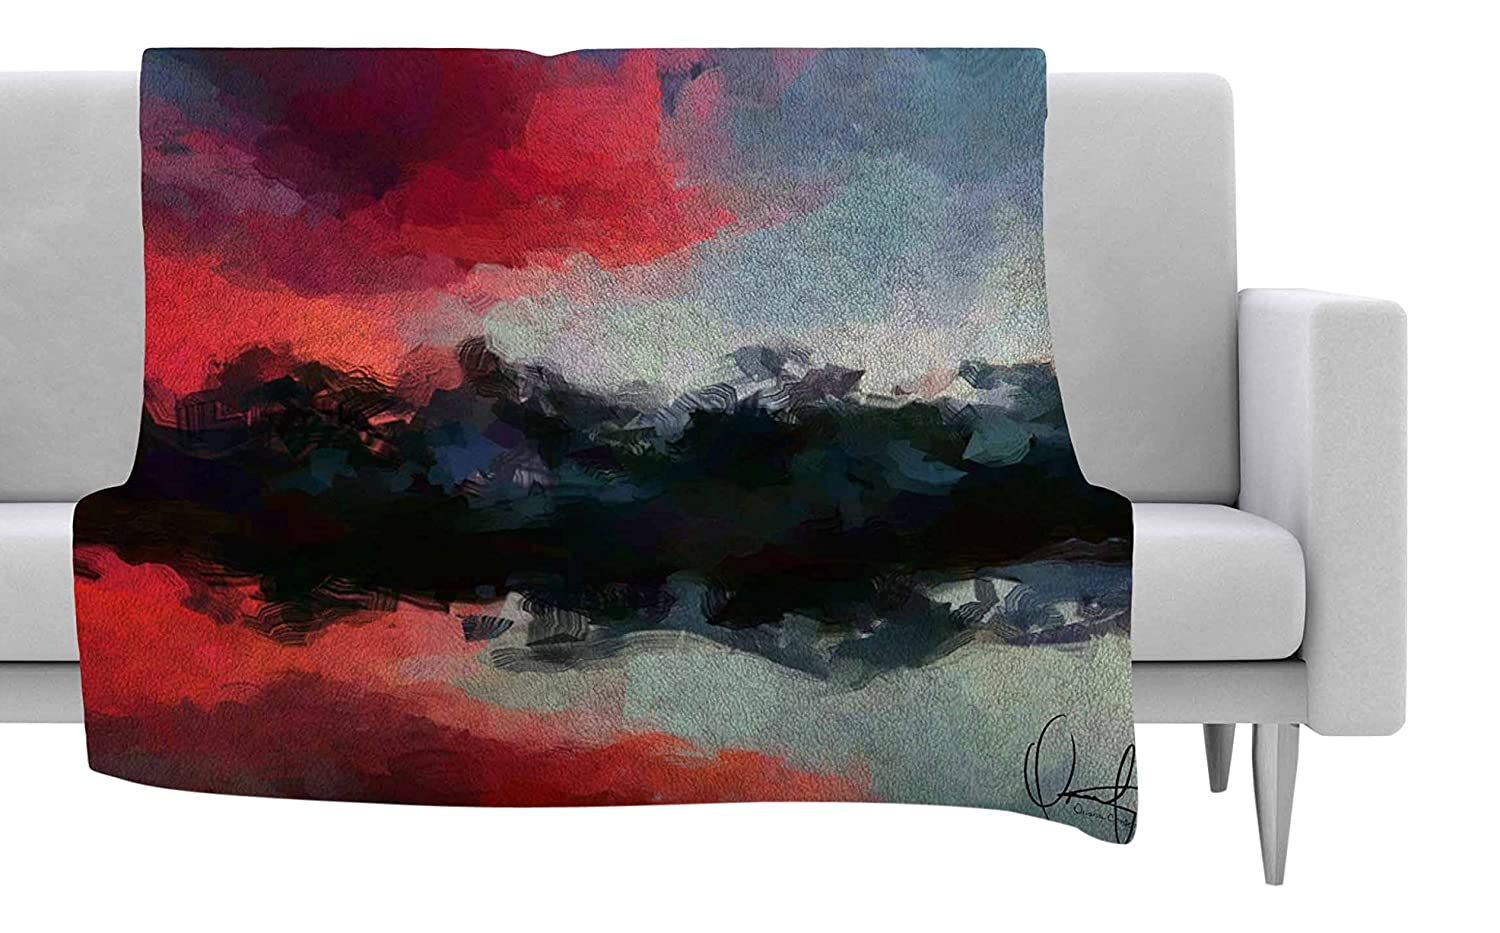 Insert Side Sofa Throw Pillow 20 Designart Cu14667 20 20 C Loch Lomond Jetty And Mountains Landscape Printed Round Cushion Cover For Living Room Throw Pillow Covers